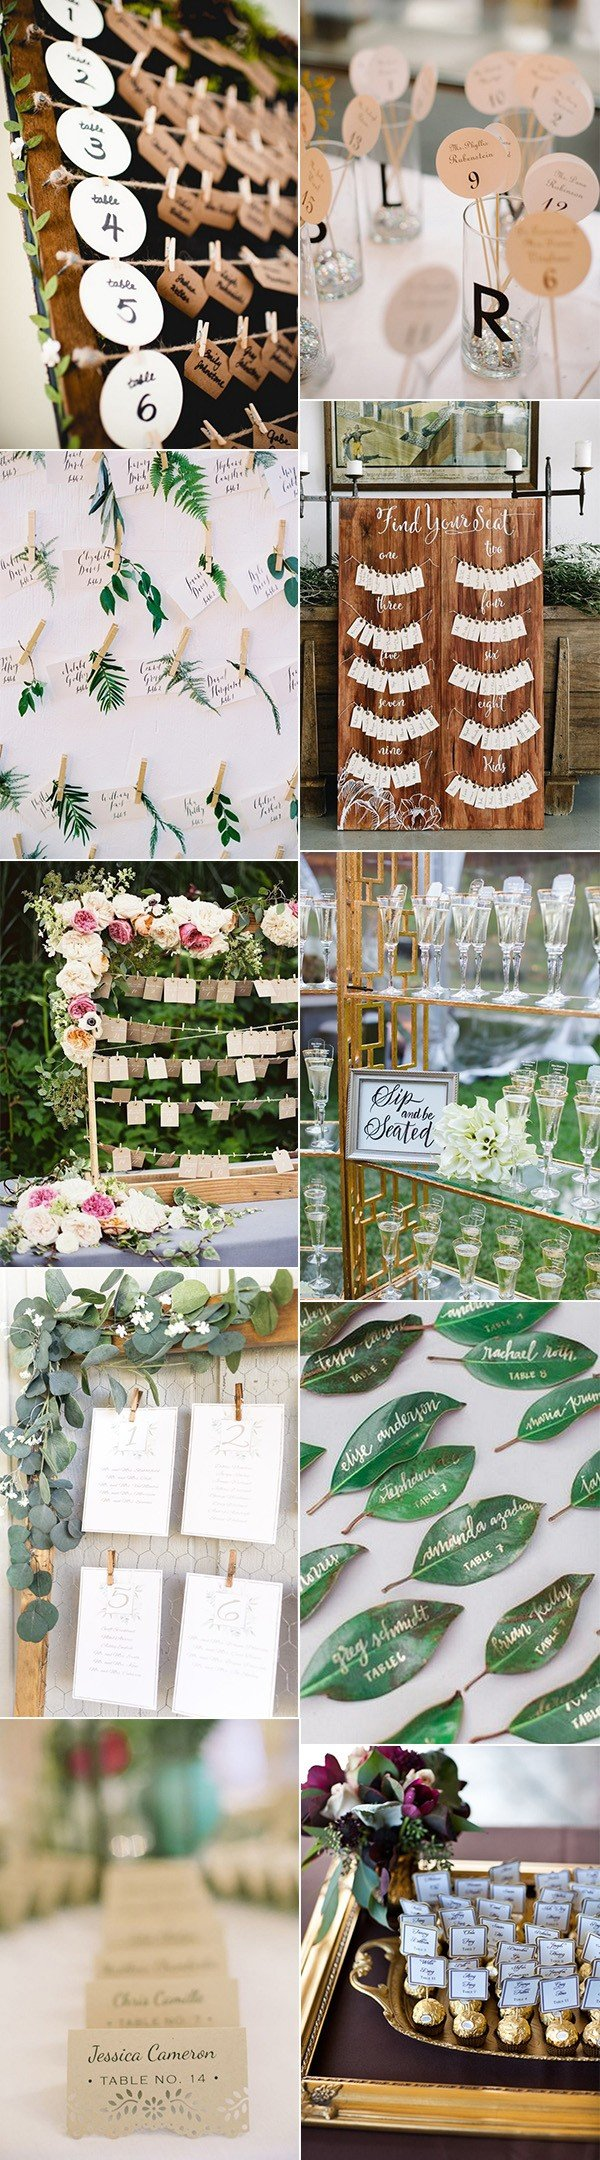 creative wedding escort card display ideas